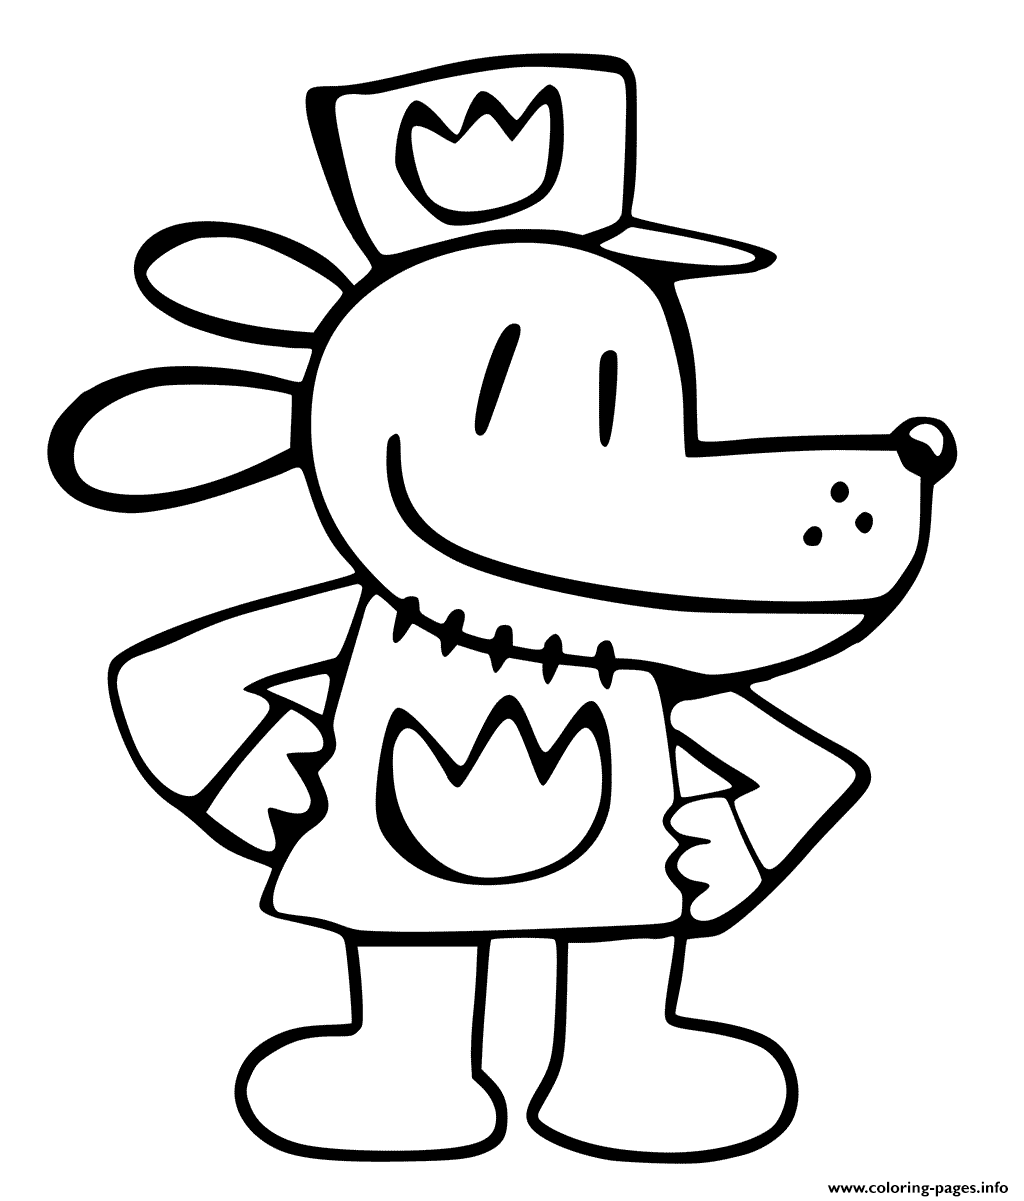 dog man coloring pages dog man coloring pages archives xcolorings pages coloring man dog